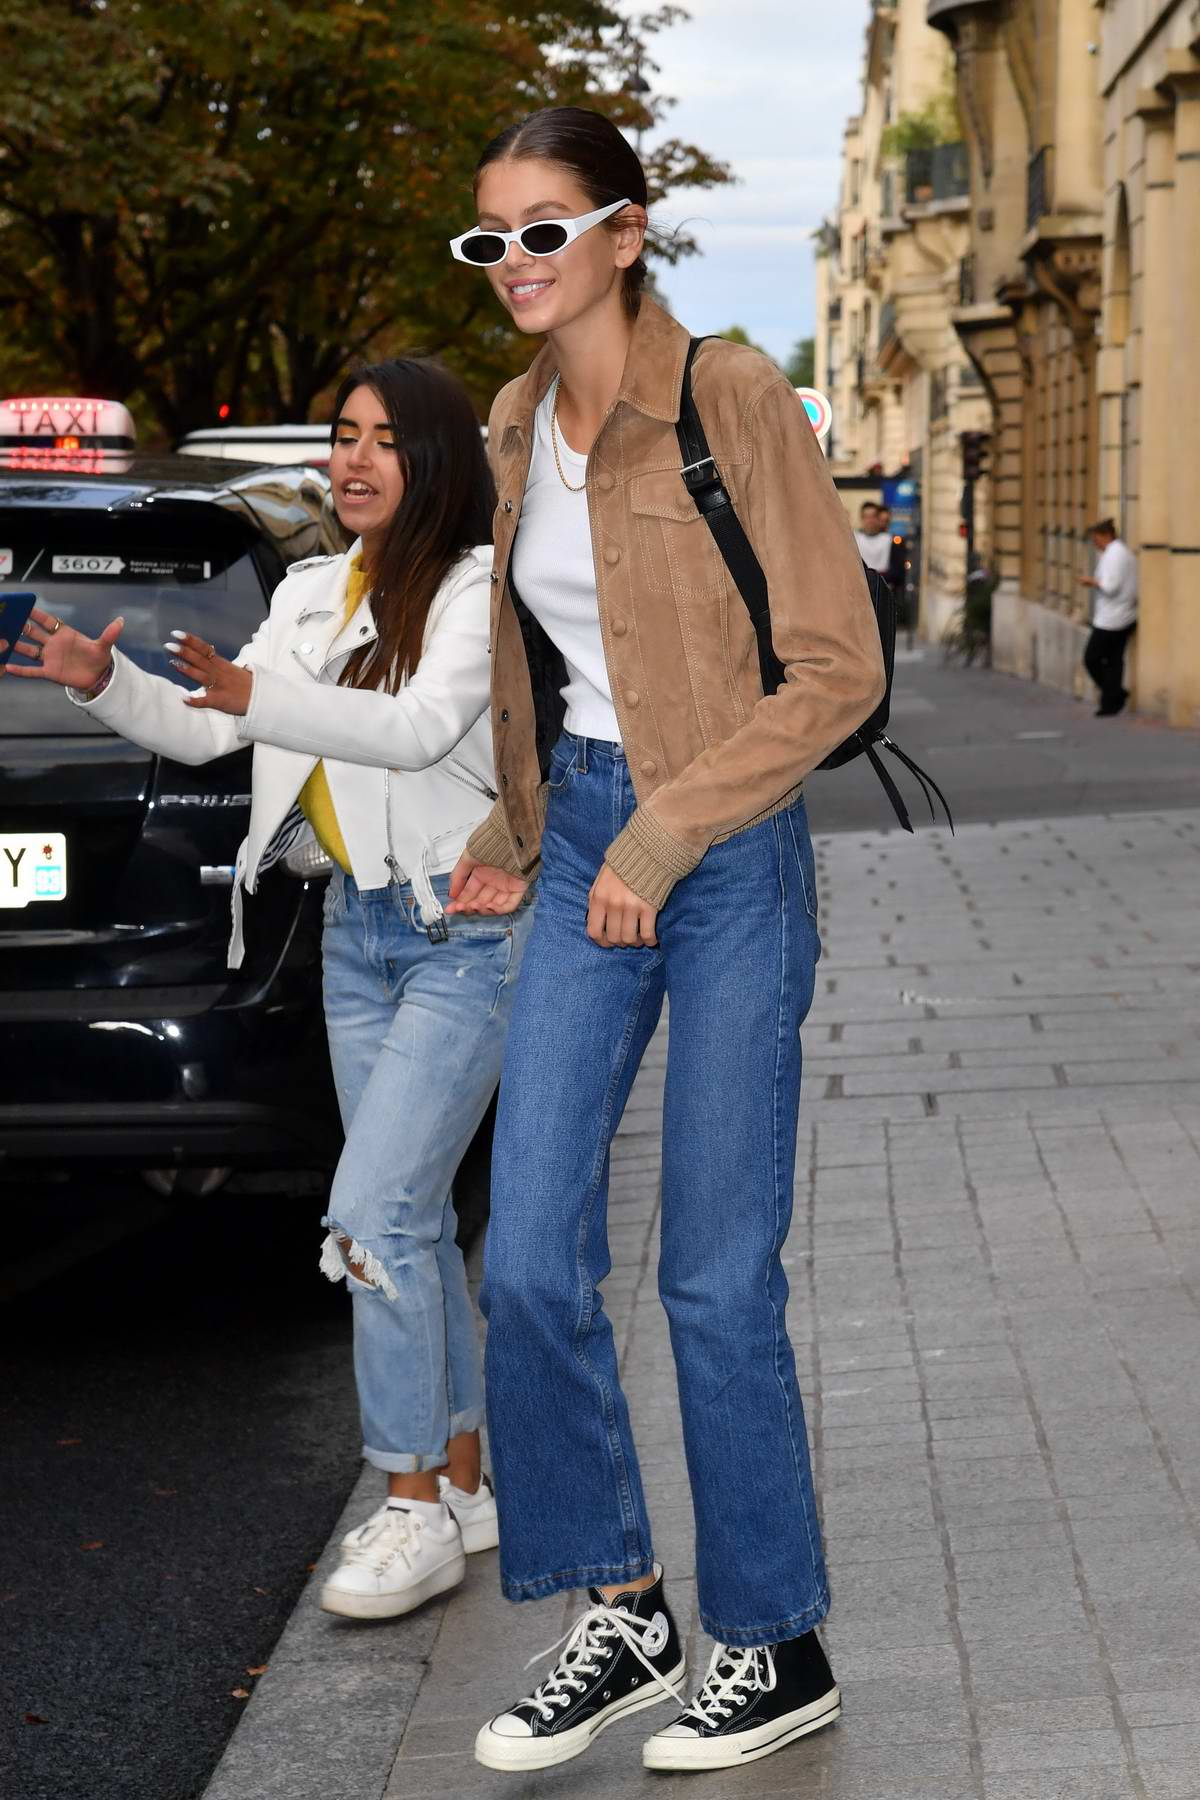 Kaia Gerber wears a brown suede jacket and jeans as she leaves her hotel in Paris, France